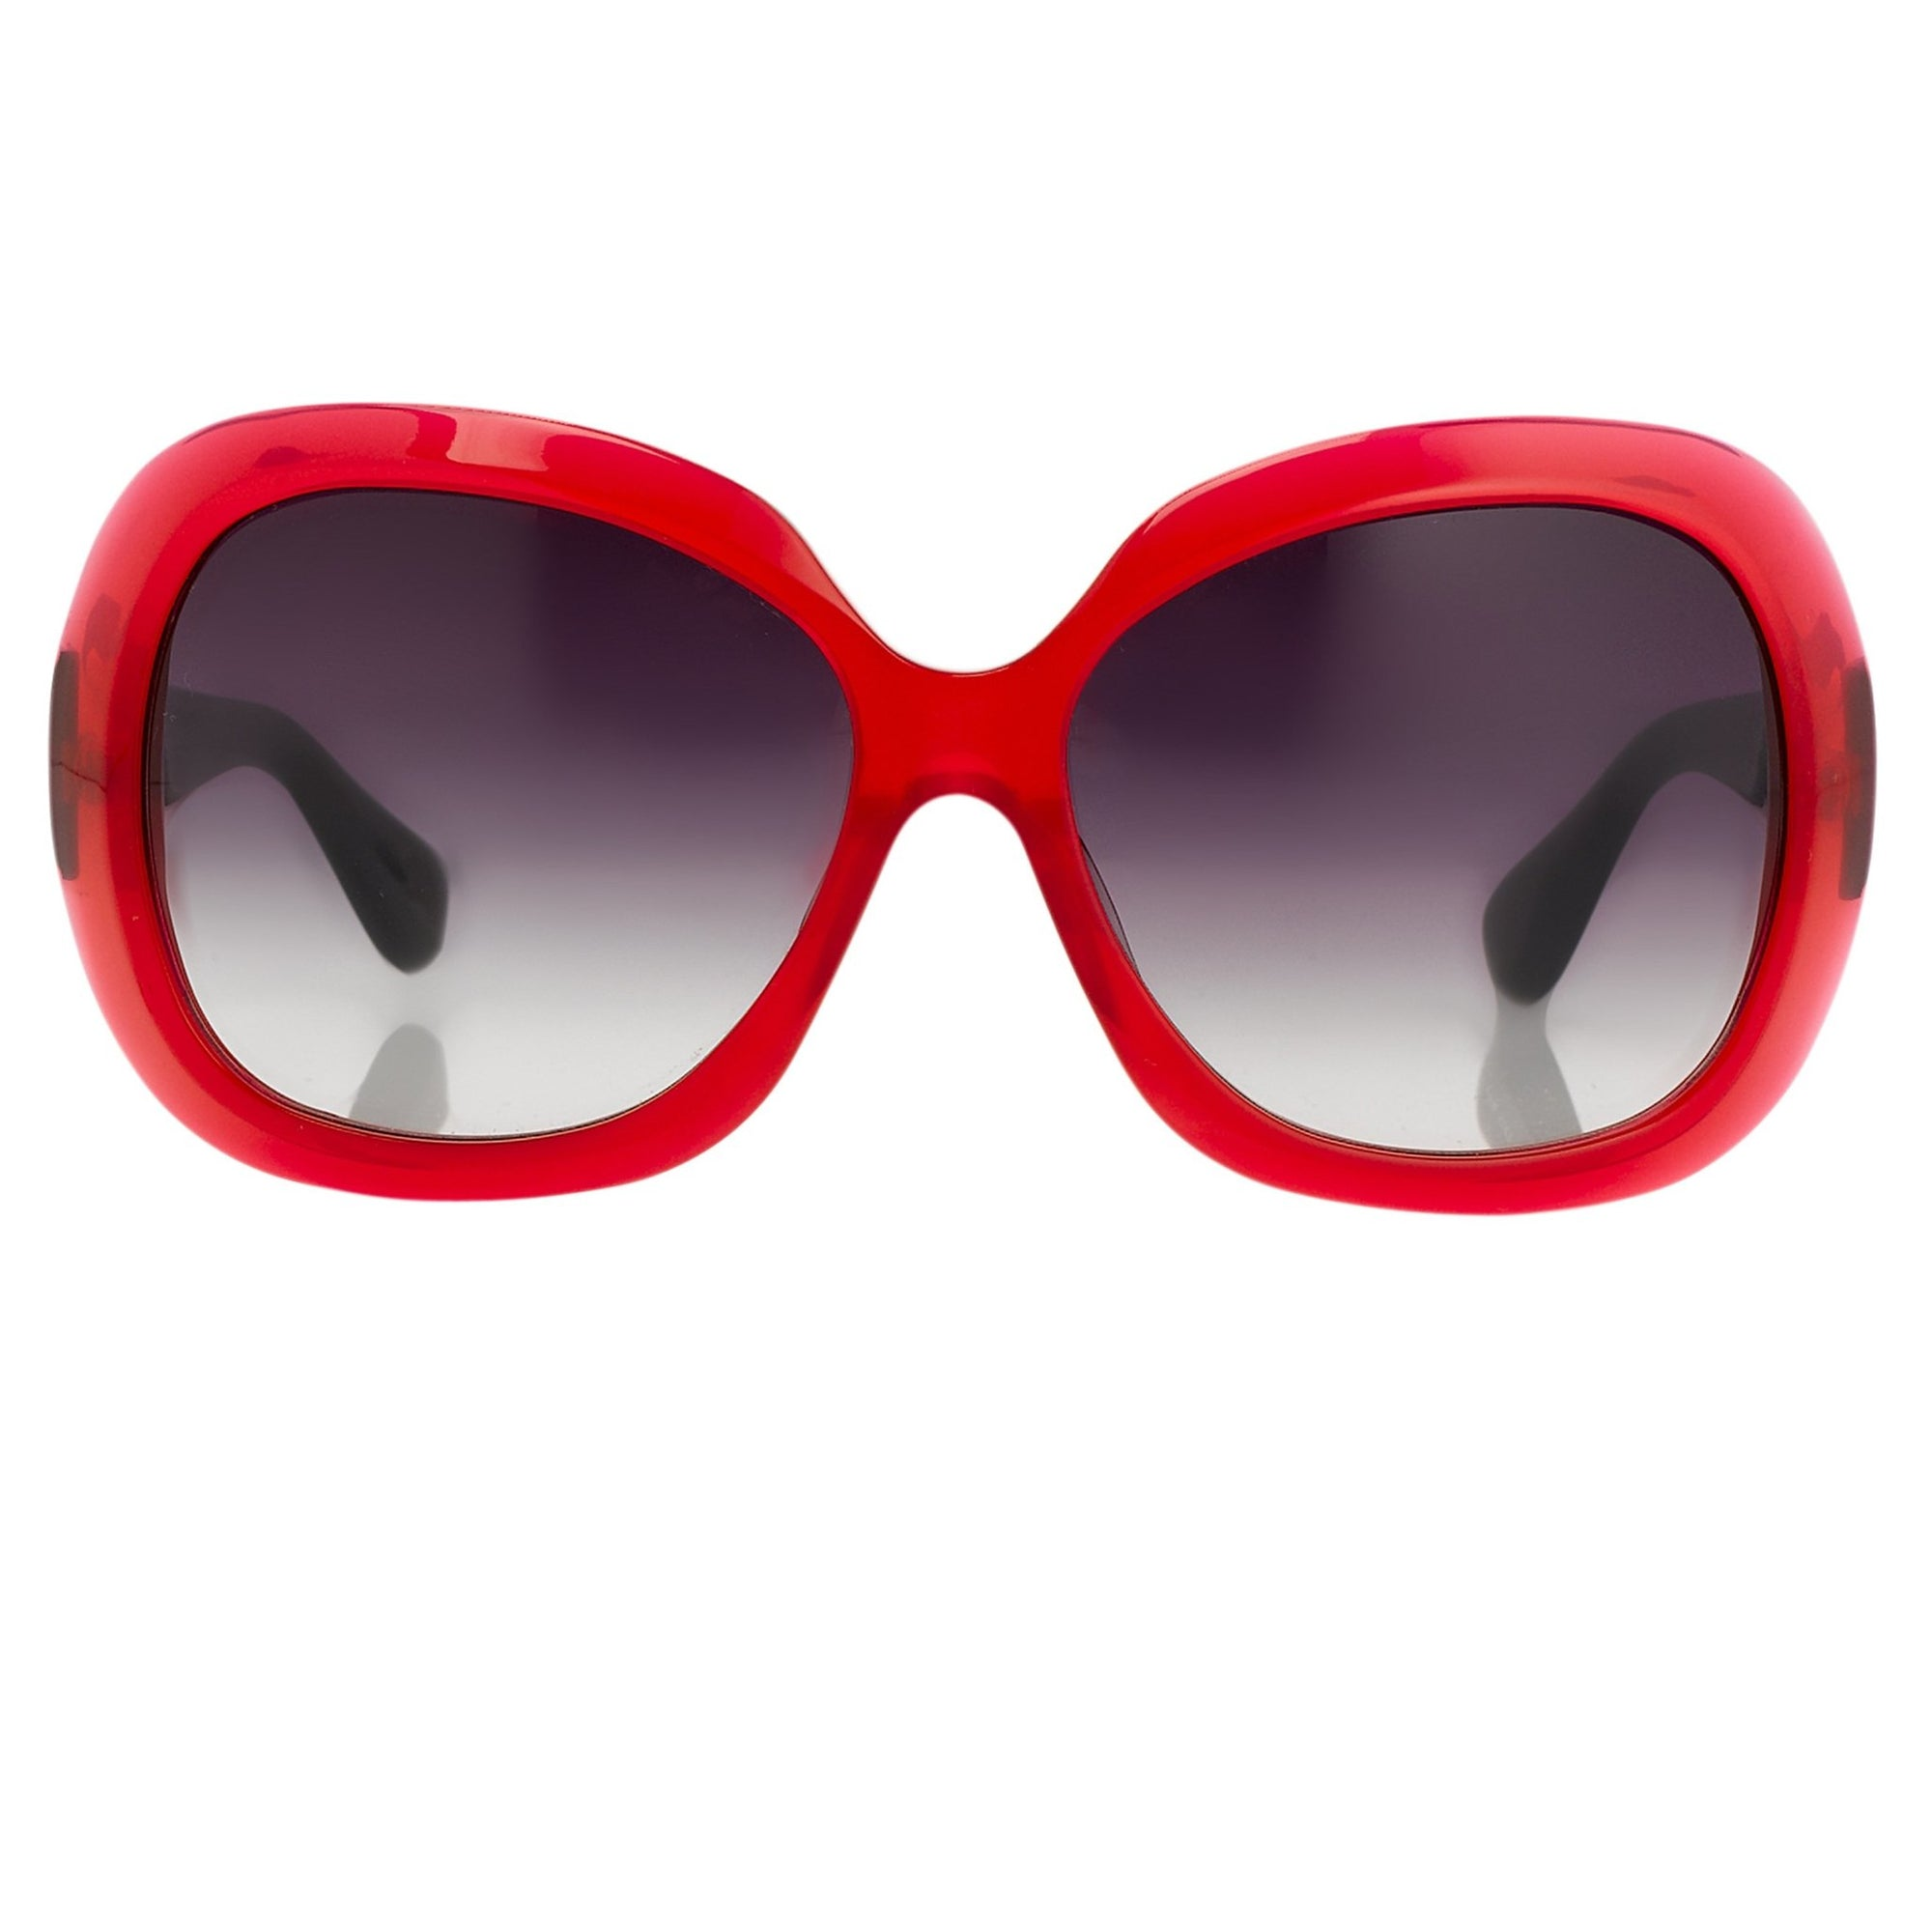 Rue De Mail Sunglasses Oversized Translucent Red with Grey Graduated Lenses RDM2C4SUN - Watches & Crystals